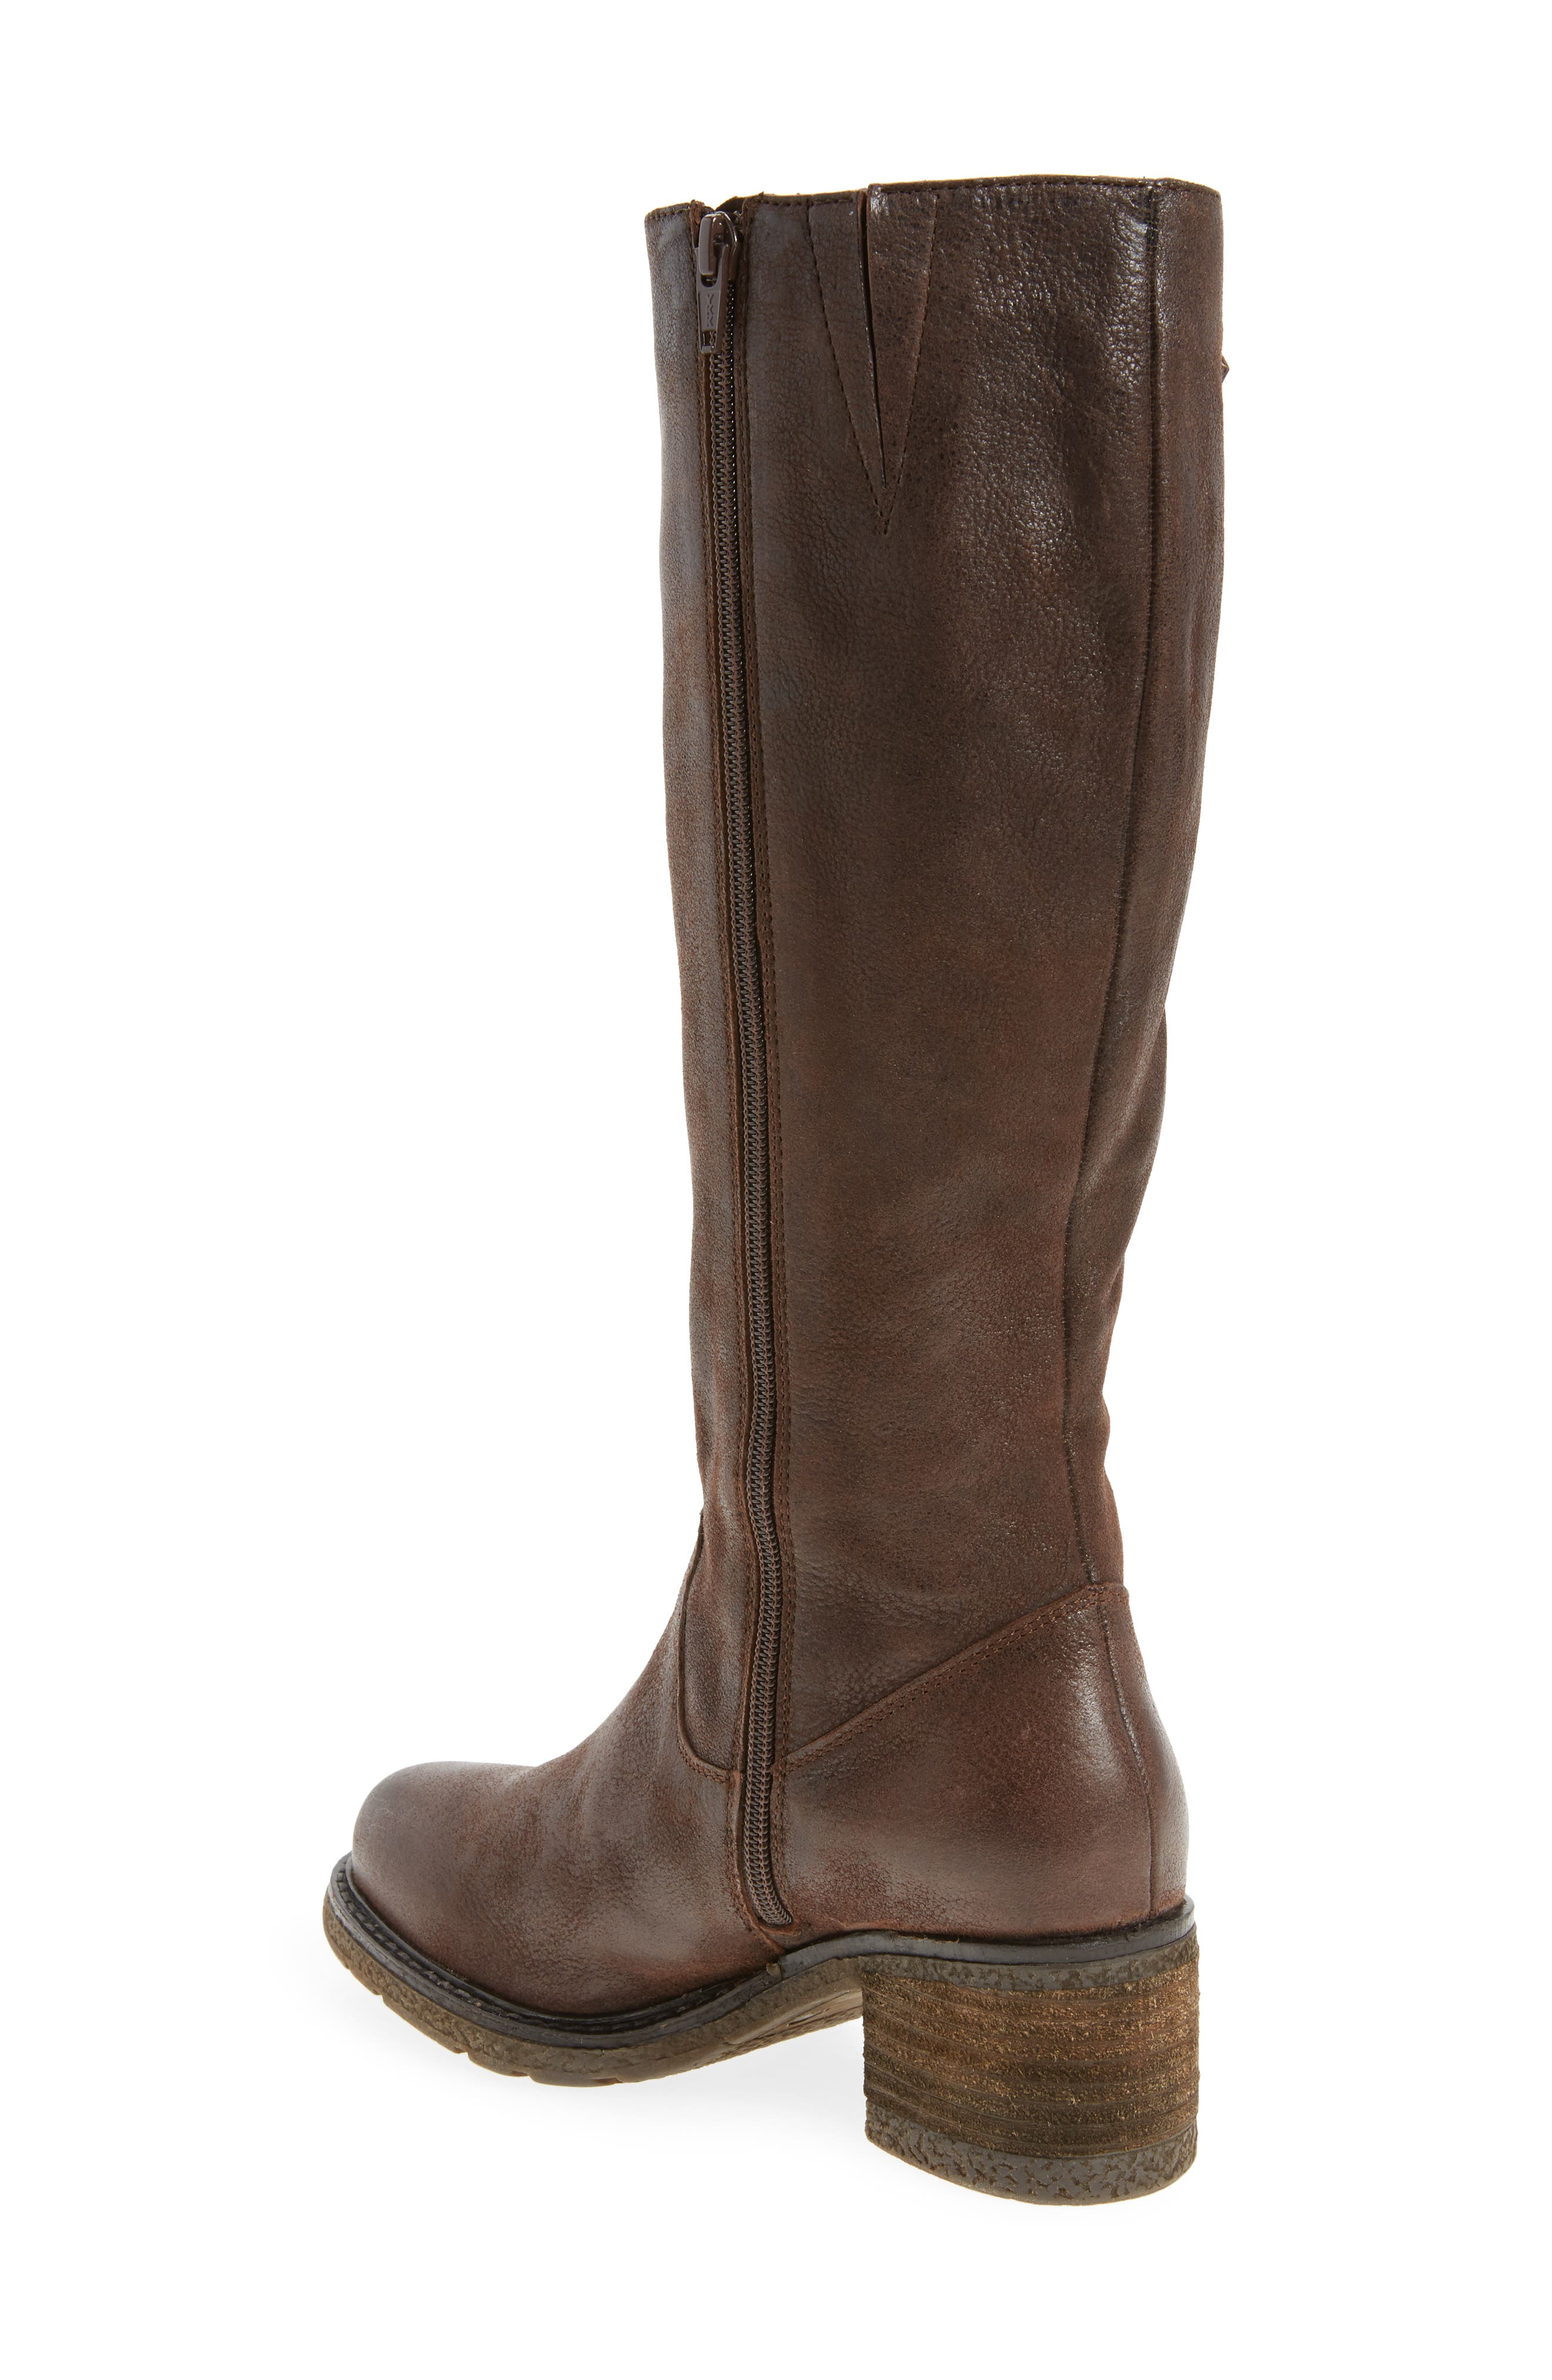 Exit Tall Boot,                             Alternate thumbnail 2, color,                             Brown Leather